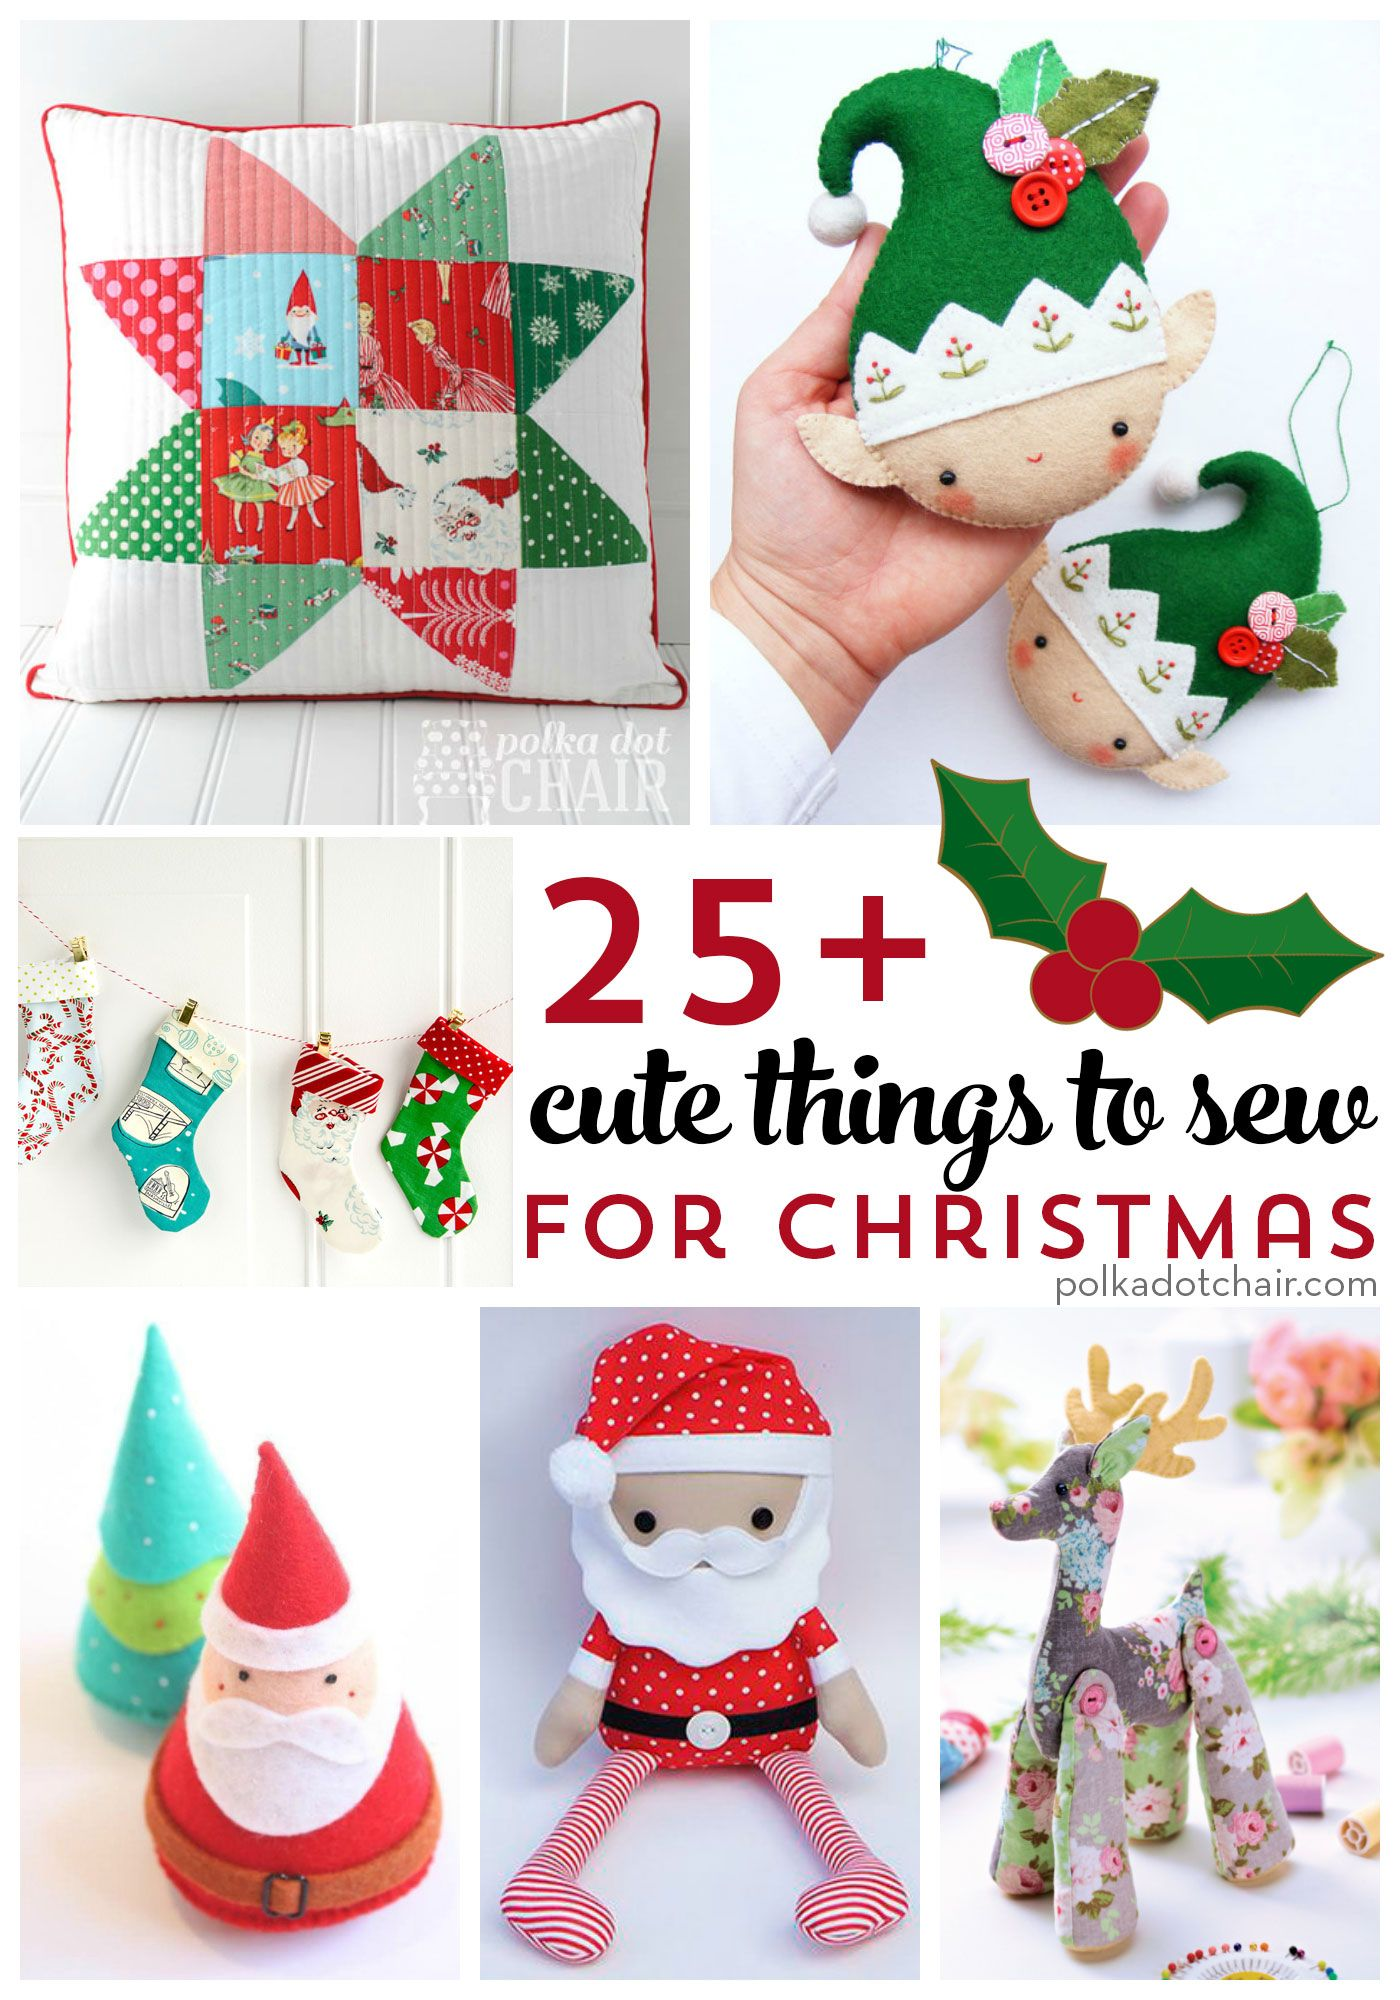 More than 25 cute things to sew for christmas stockings more than 25 cute things to sew for christmas free sewing patterns and tutorials for christmas stockings pillows crafts and softies jeuxipadfo Gallery